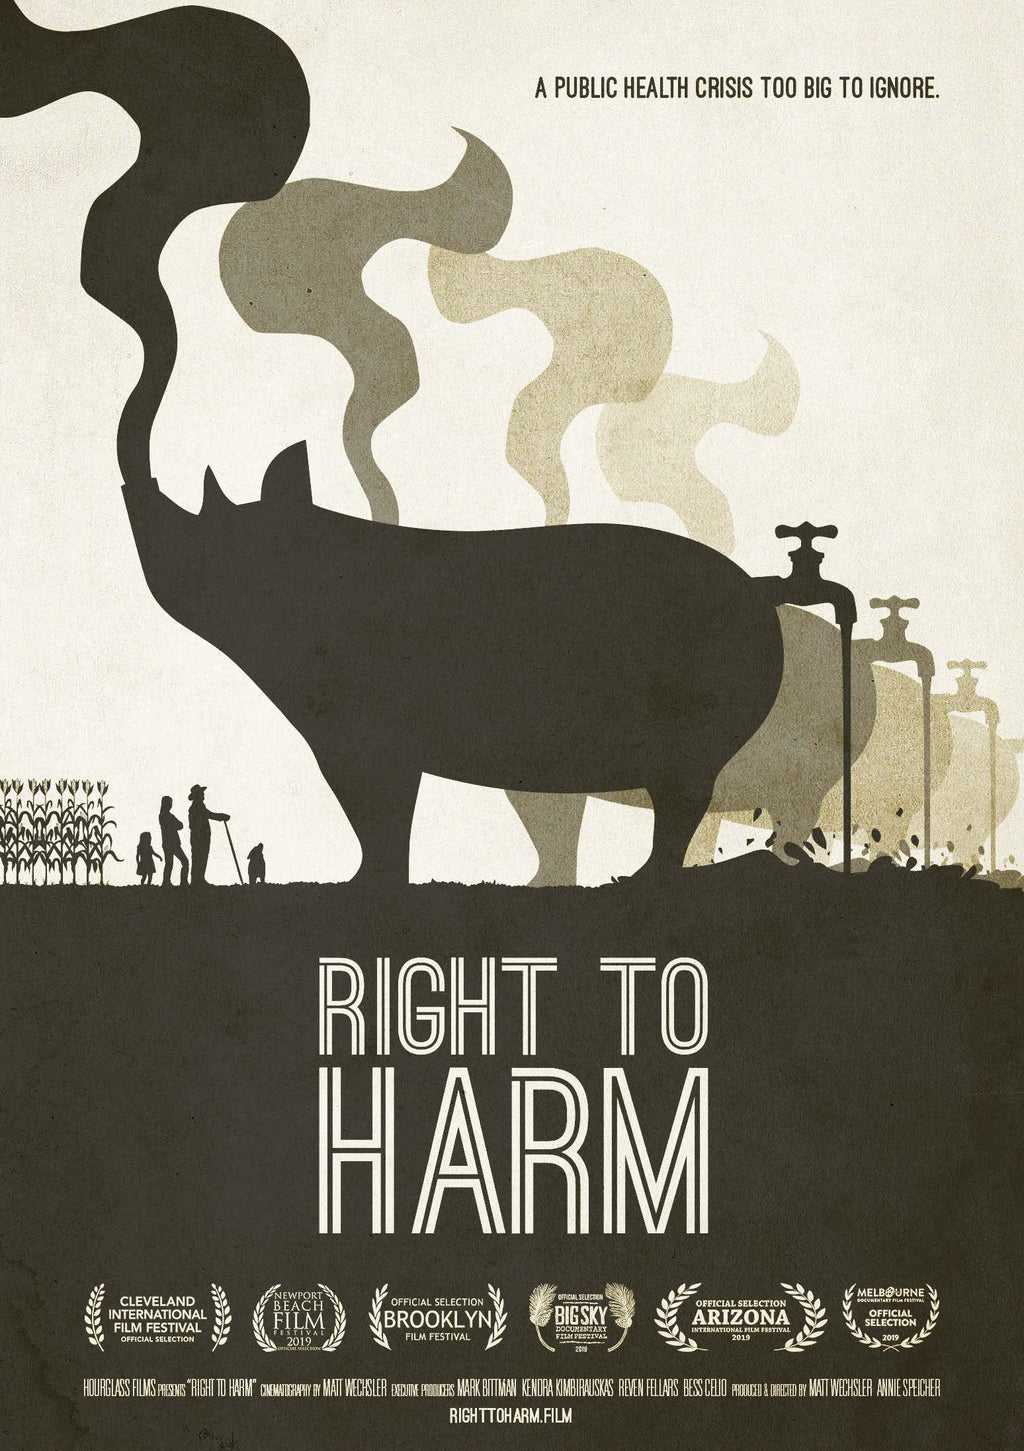 Right to Harm